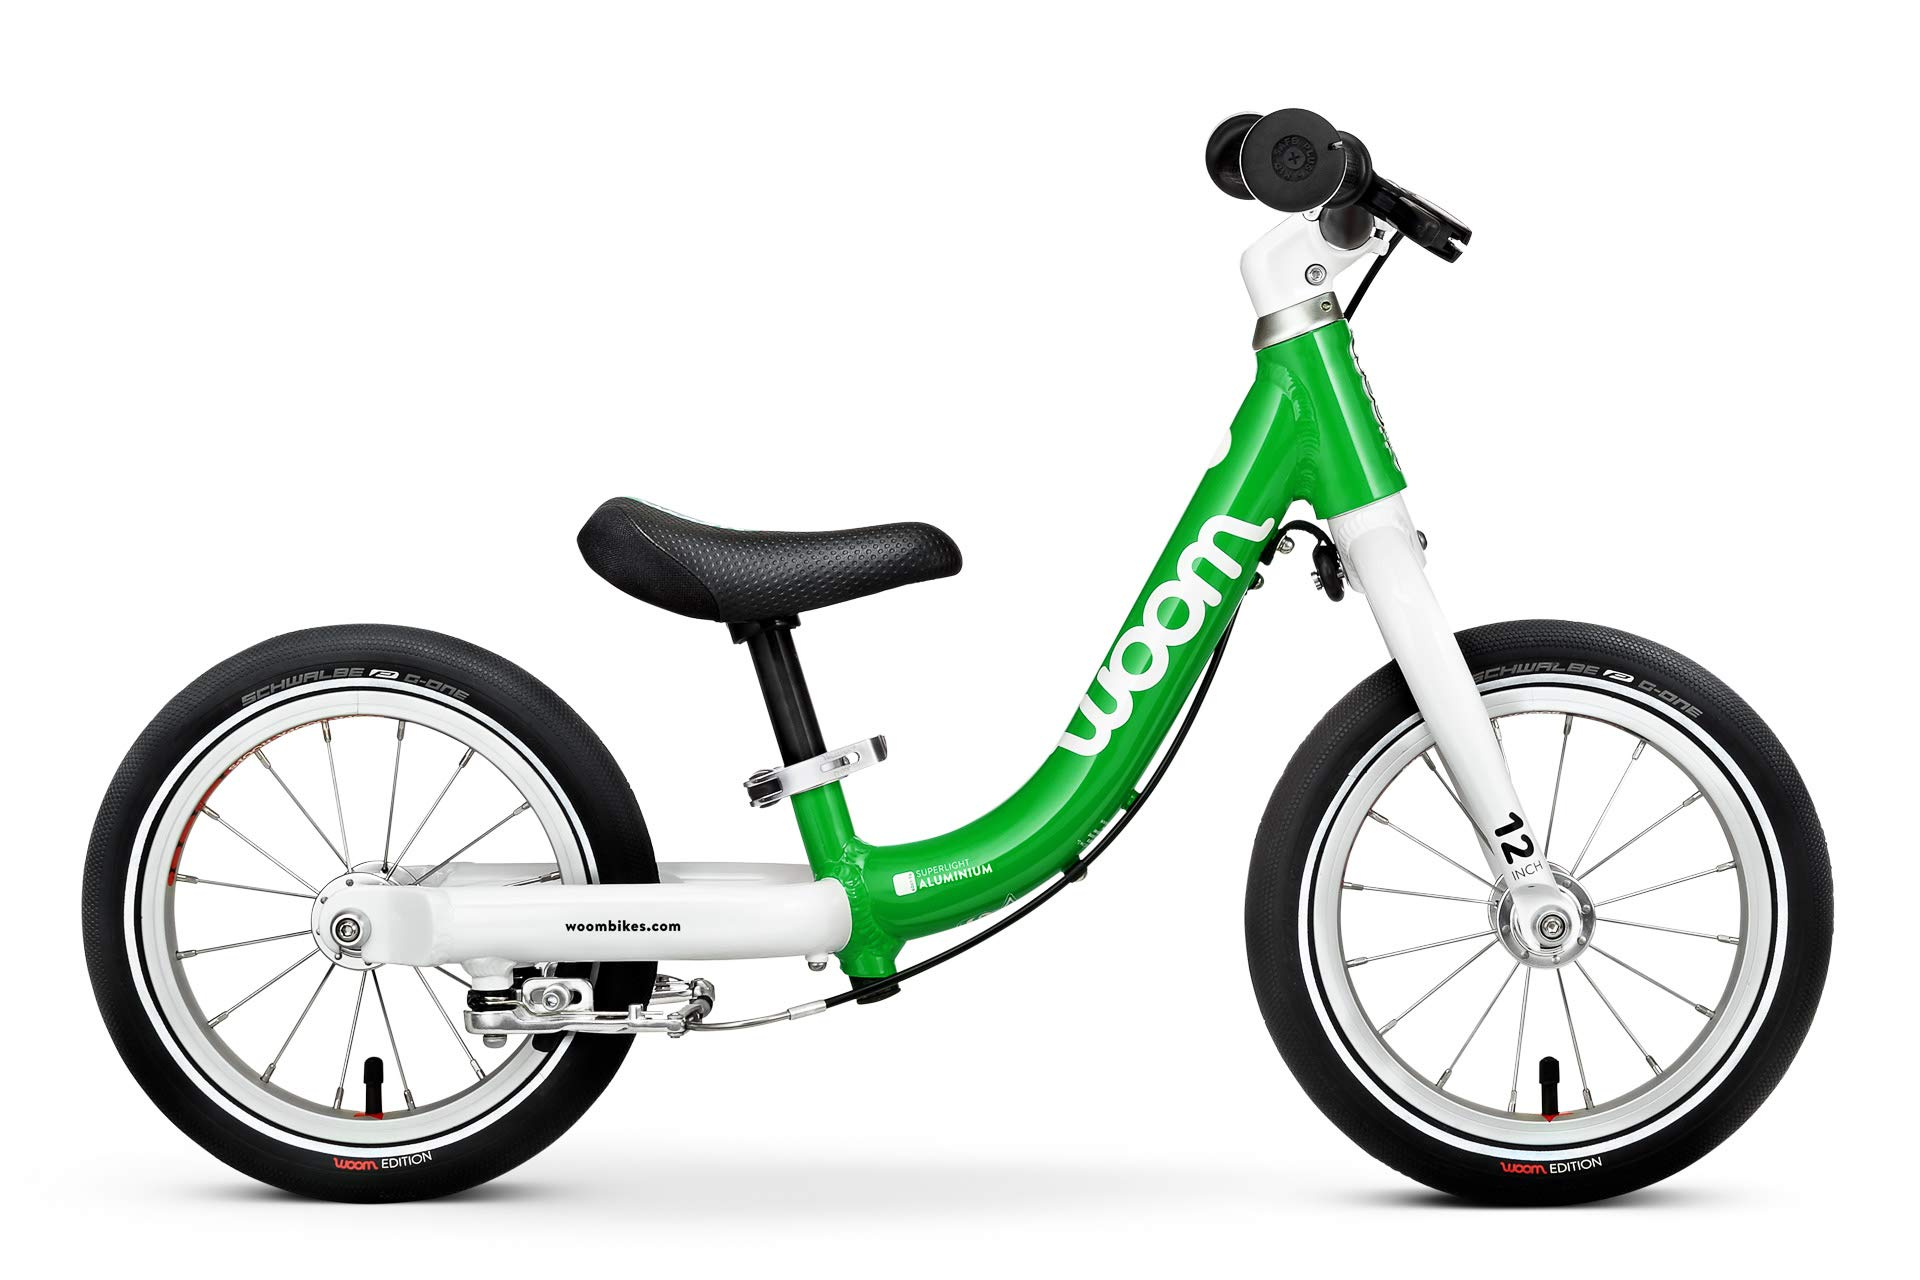 woom 1 Balance Bike 12'', Ages 18 Months to 3.5 Years, Green